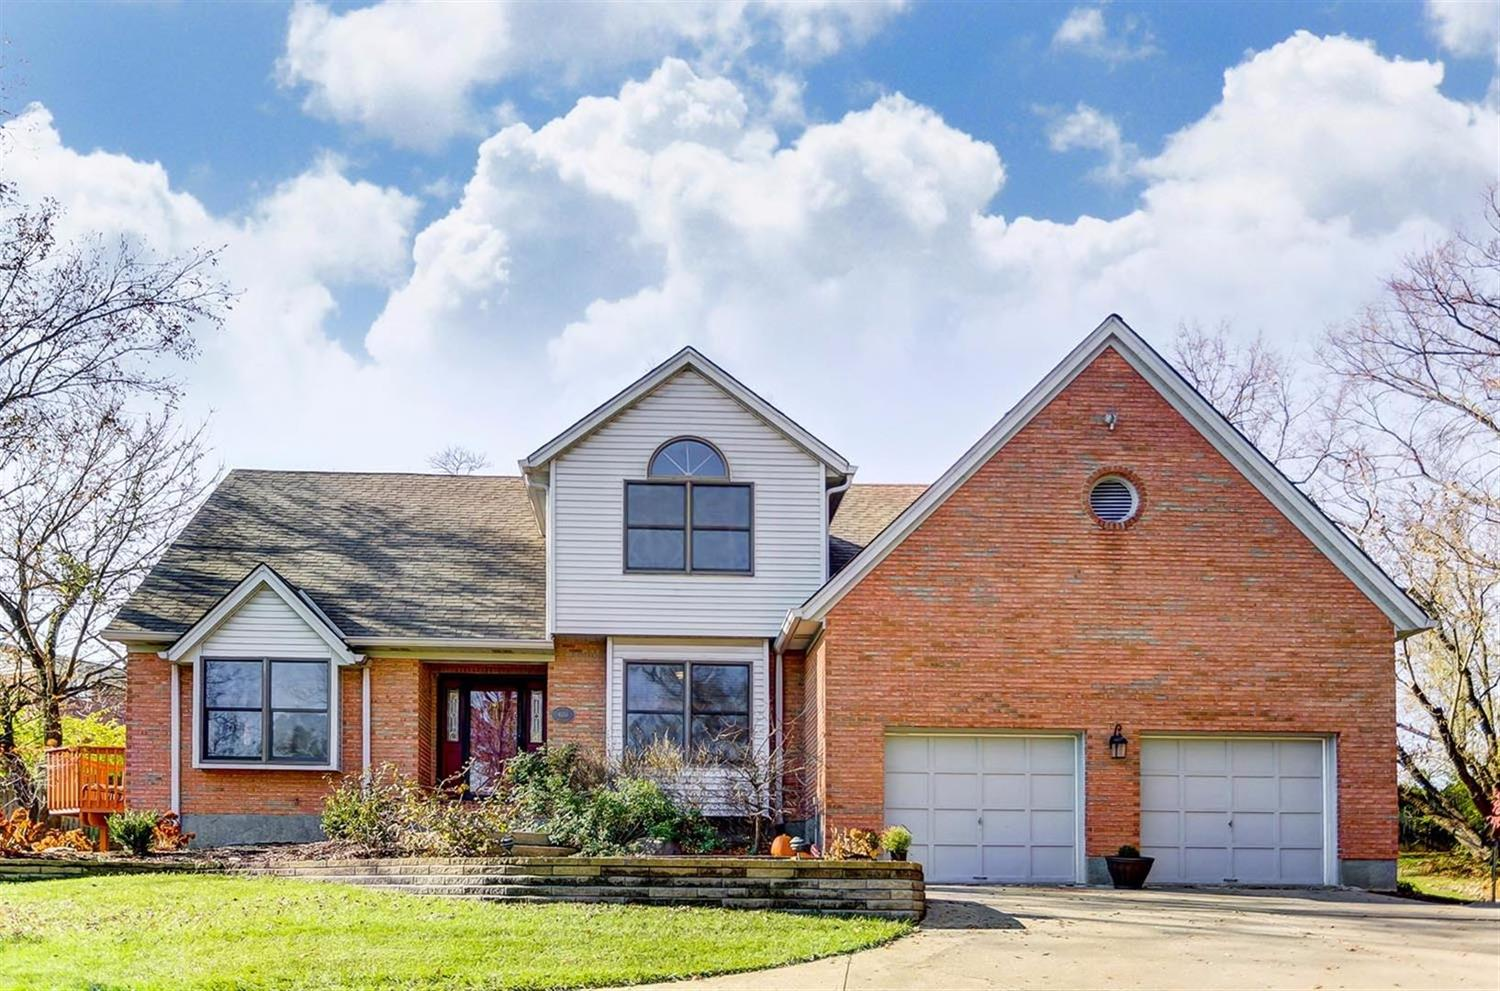 Photo 1 for 6559 Duet Ln White Oak, OH 45239